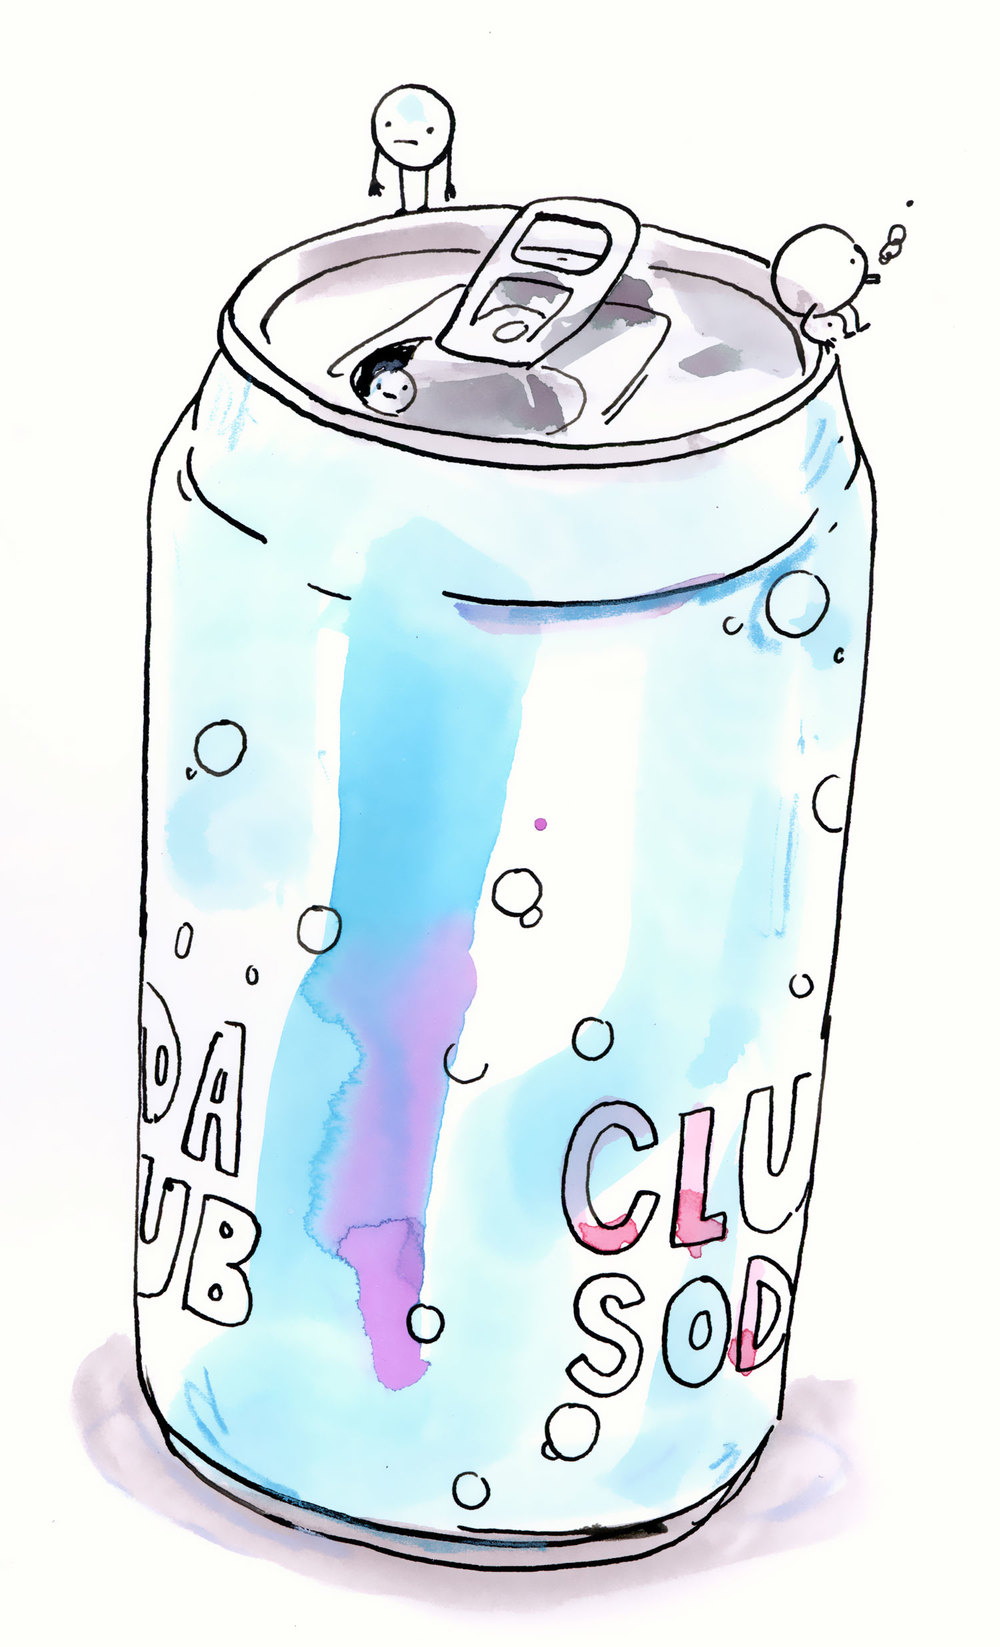 graham-roumieu-club-soda.jpg